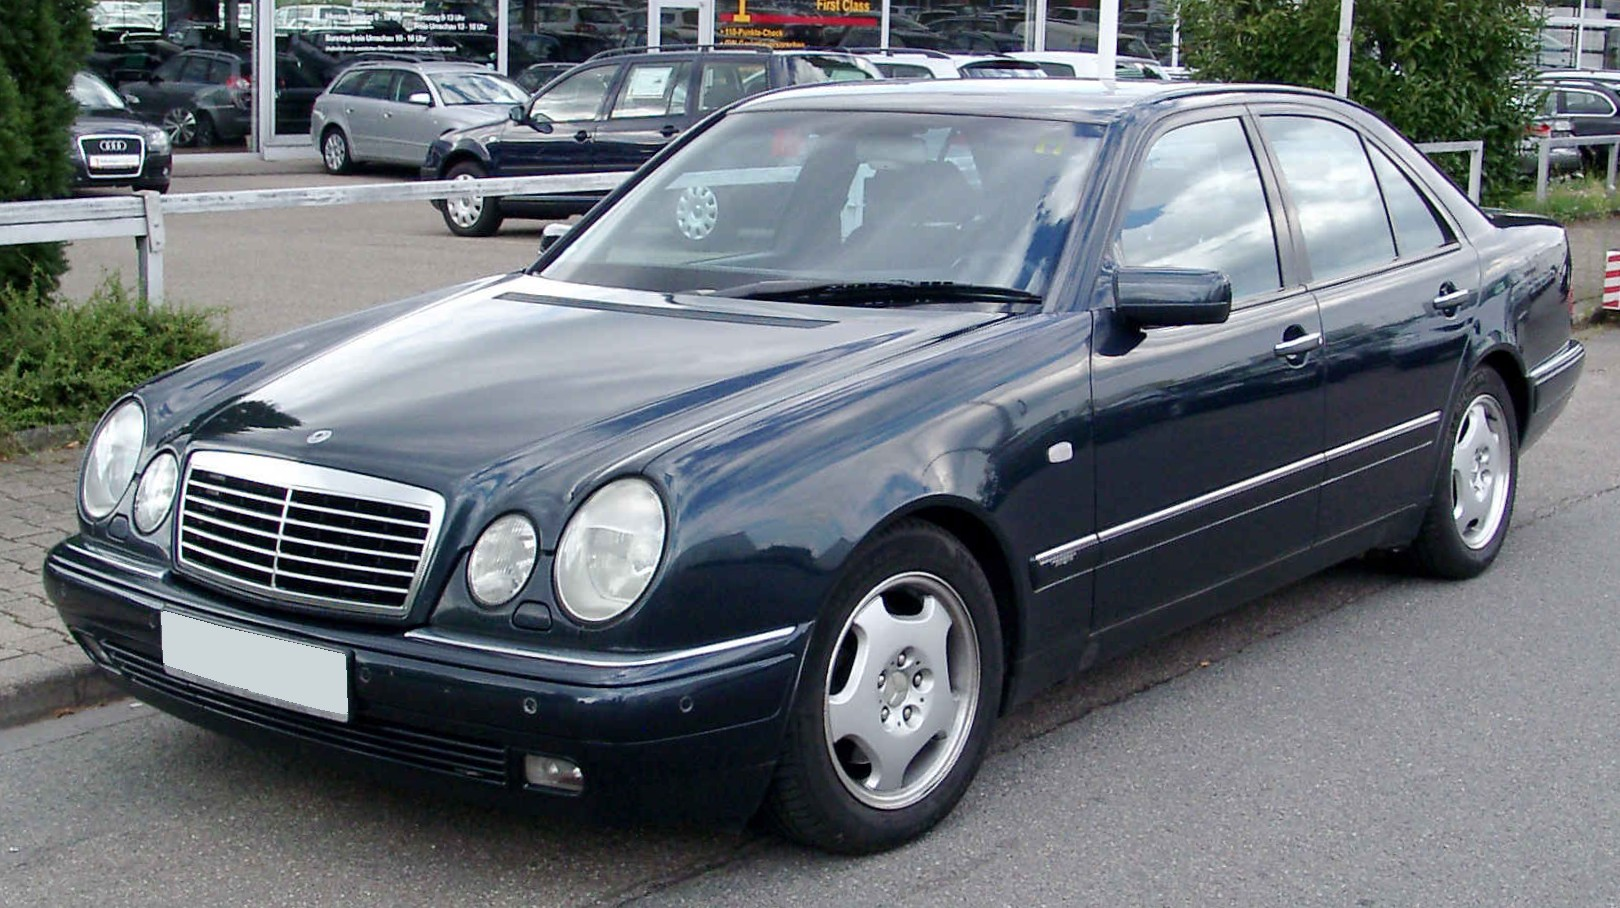 http://upload.wikimedia.org/wikipedia/commons/d/d7/Mercedes-Benz_W210_front_20080809.jpg